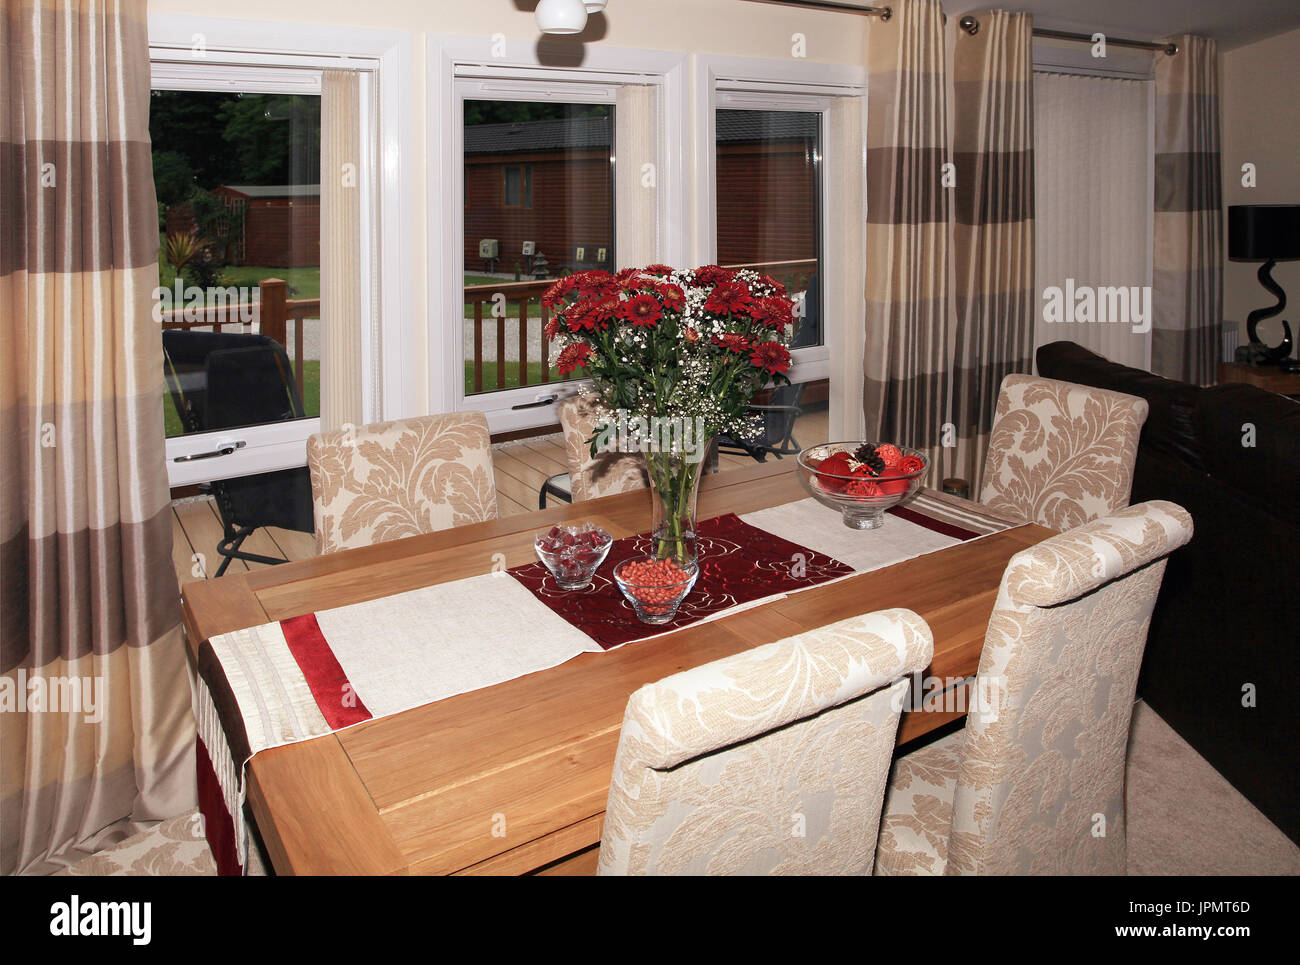 dining room, open plan living Stock Photo